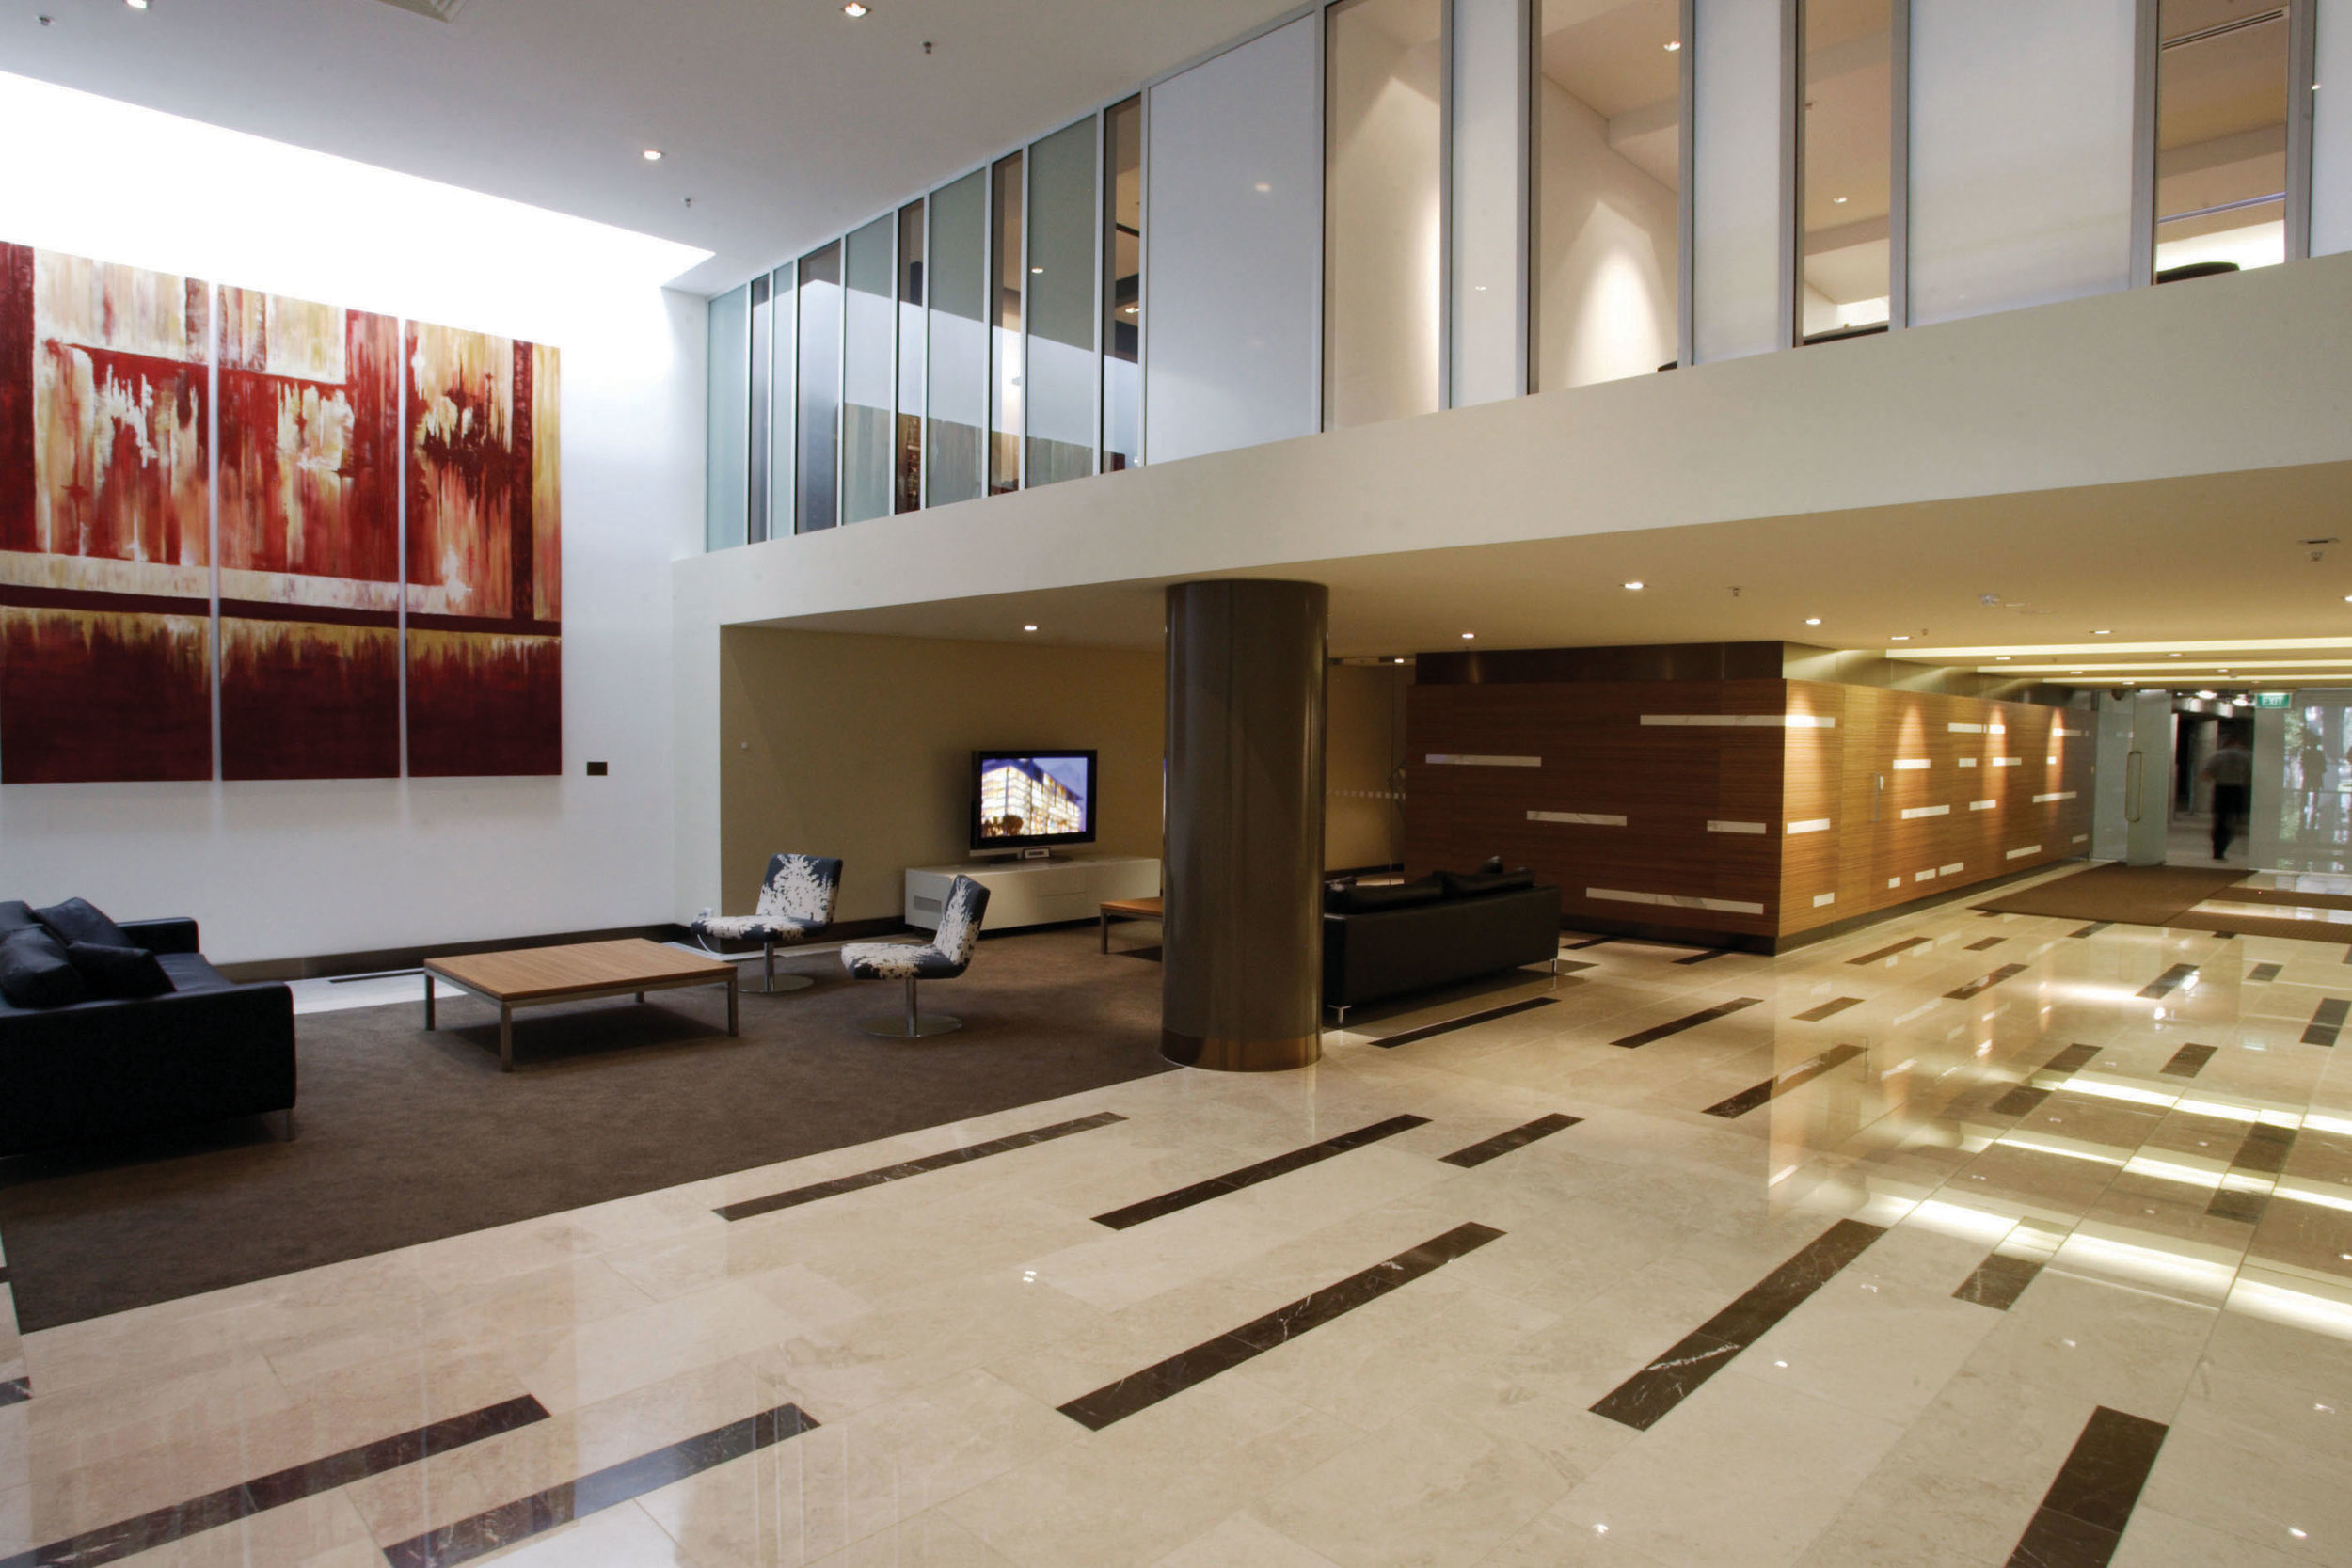 The lobby introduces residents to a sense of refined, relaxed and contemporary style